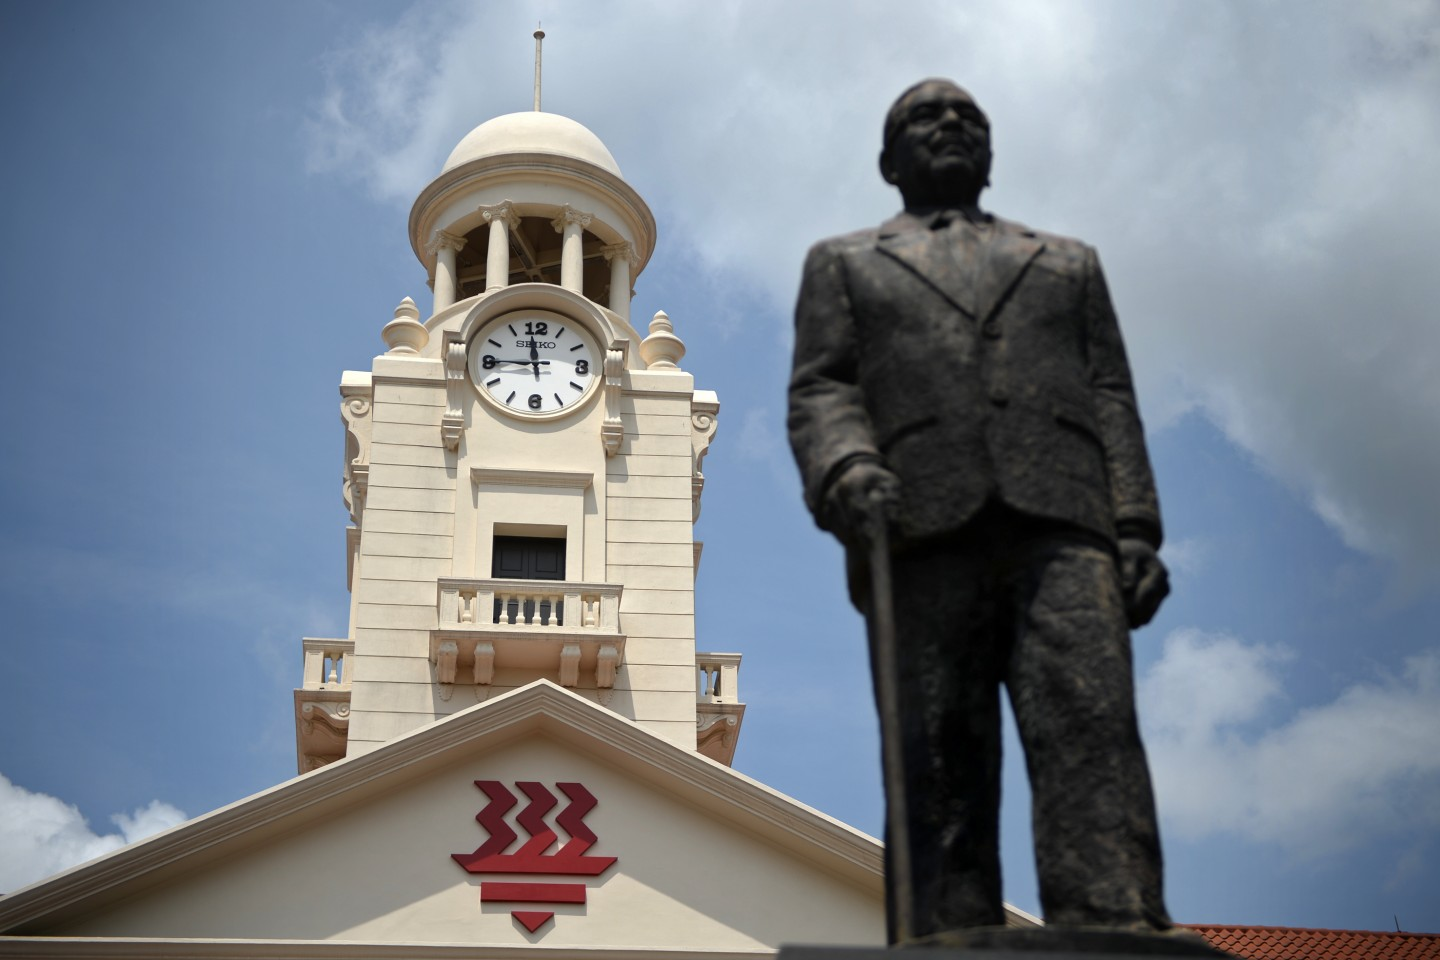 A statue of the school's founder, Tan Kah Kee, stands in front of the Hwa Chong clock tower. Hwa Chong clock tower was built in 1925 with generous donations from prominent Chinese leaders. (SPH)